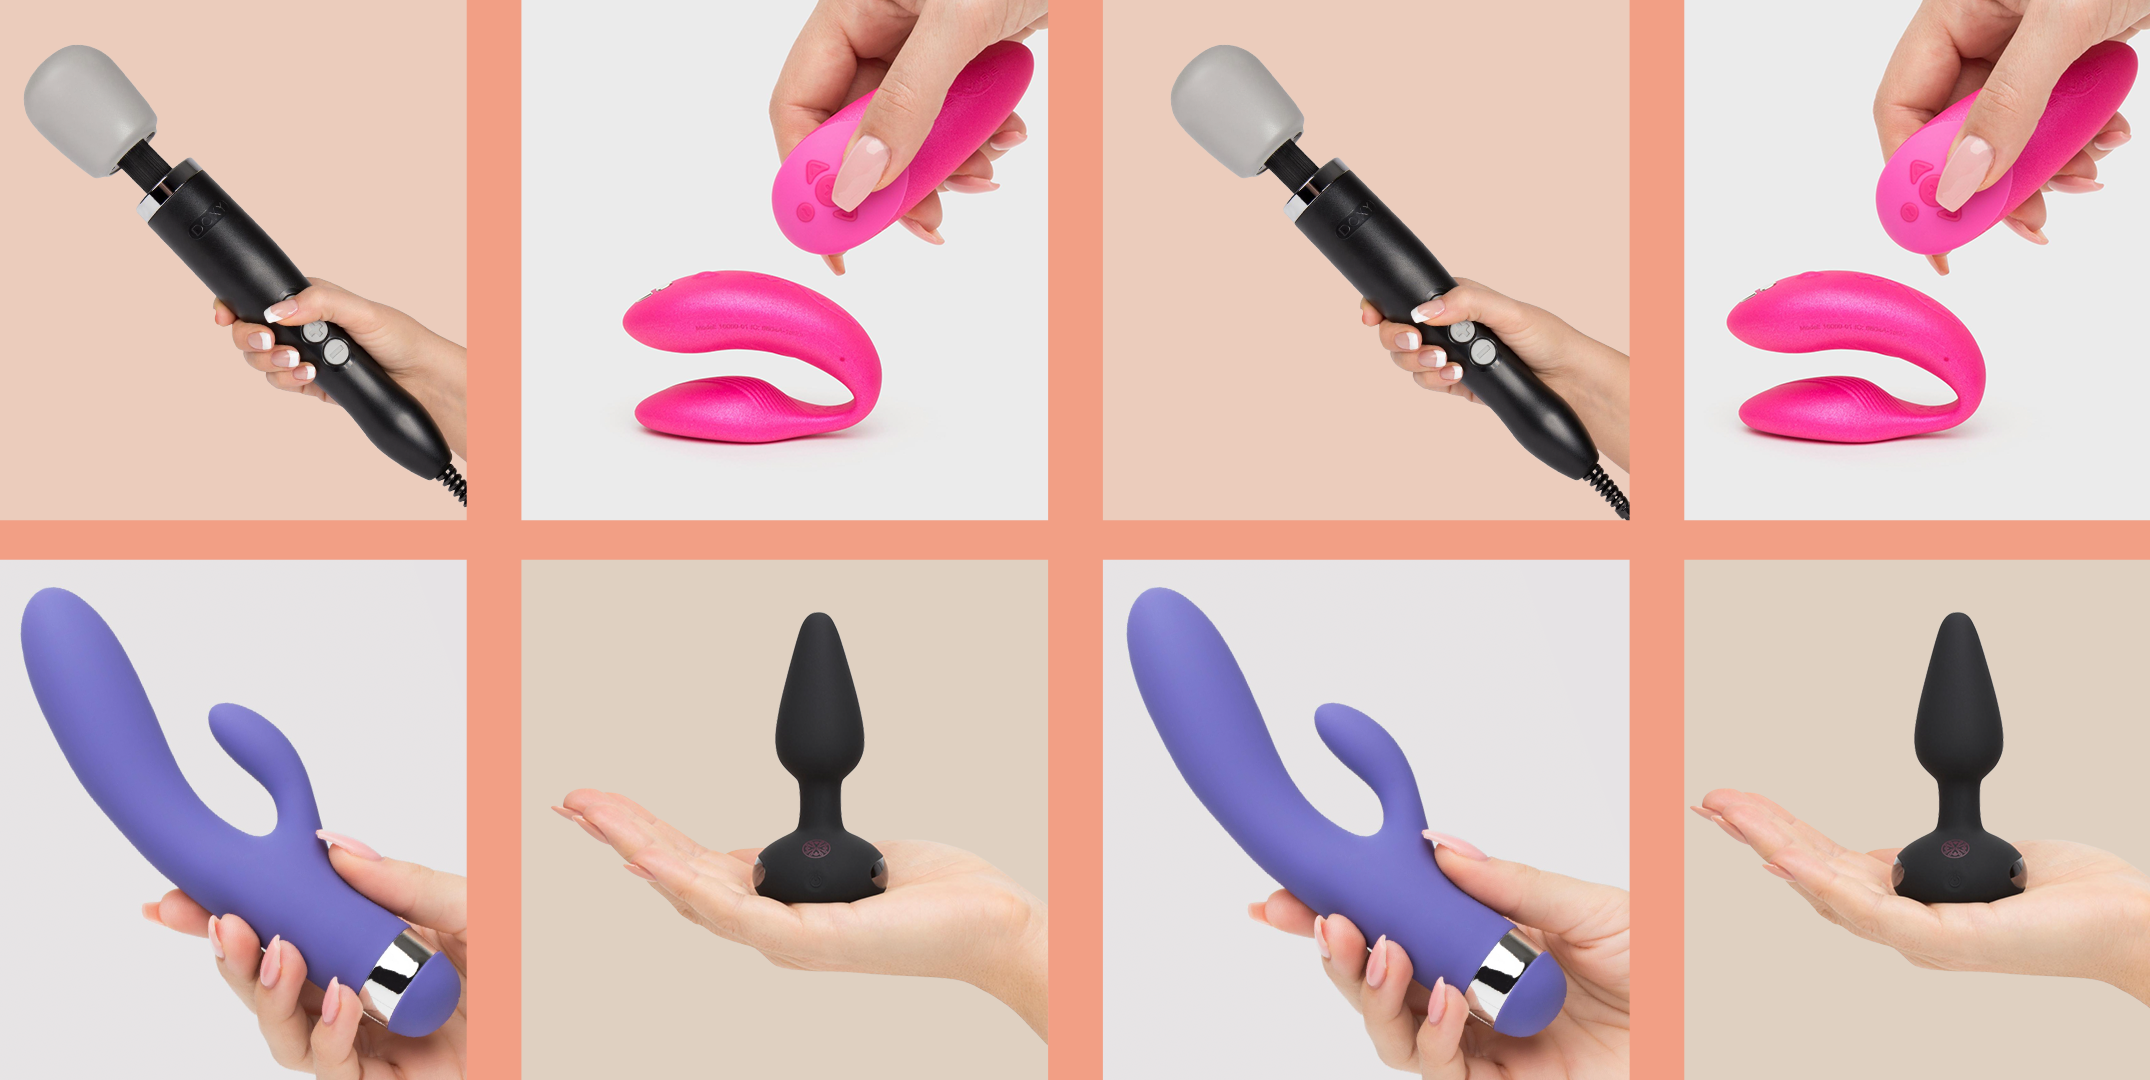 How to Use 7 Most Common Vibrators - List of Vibrators